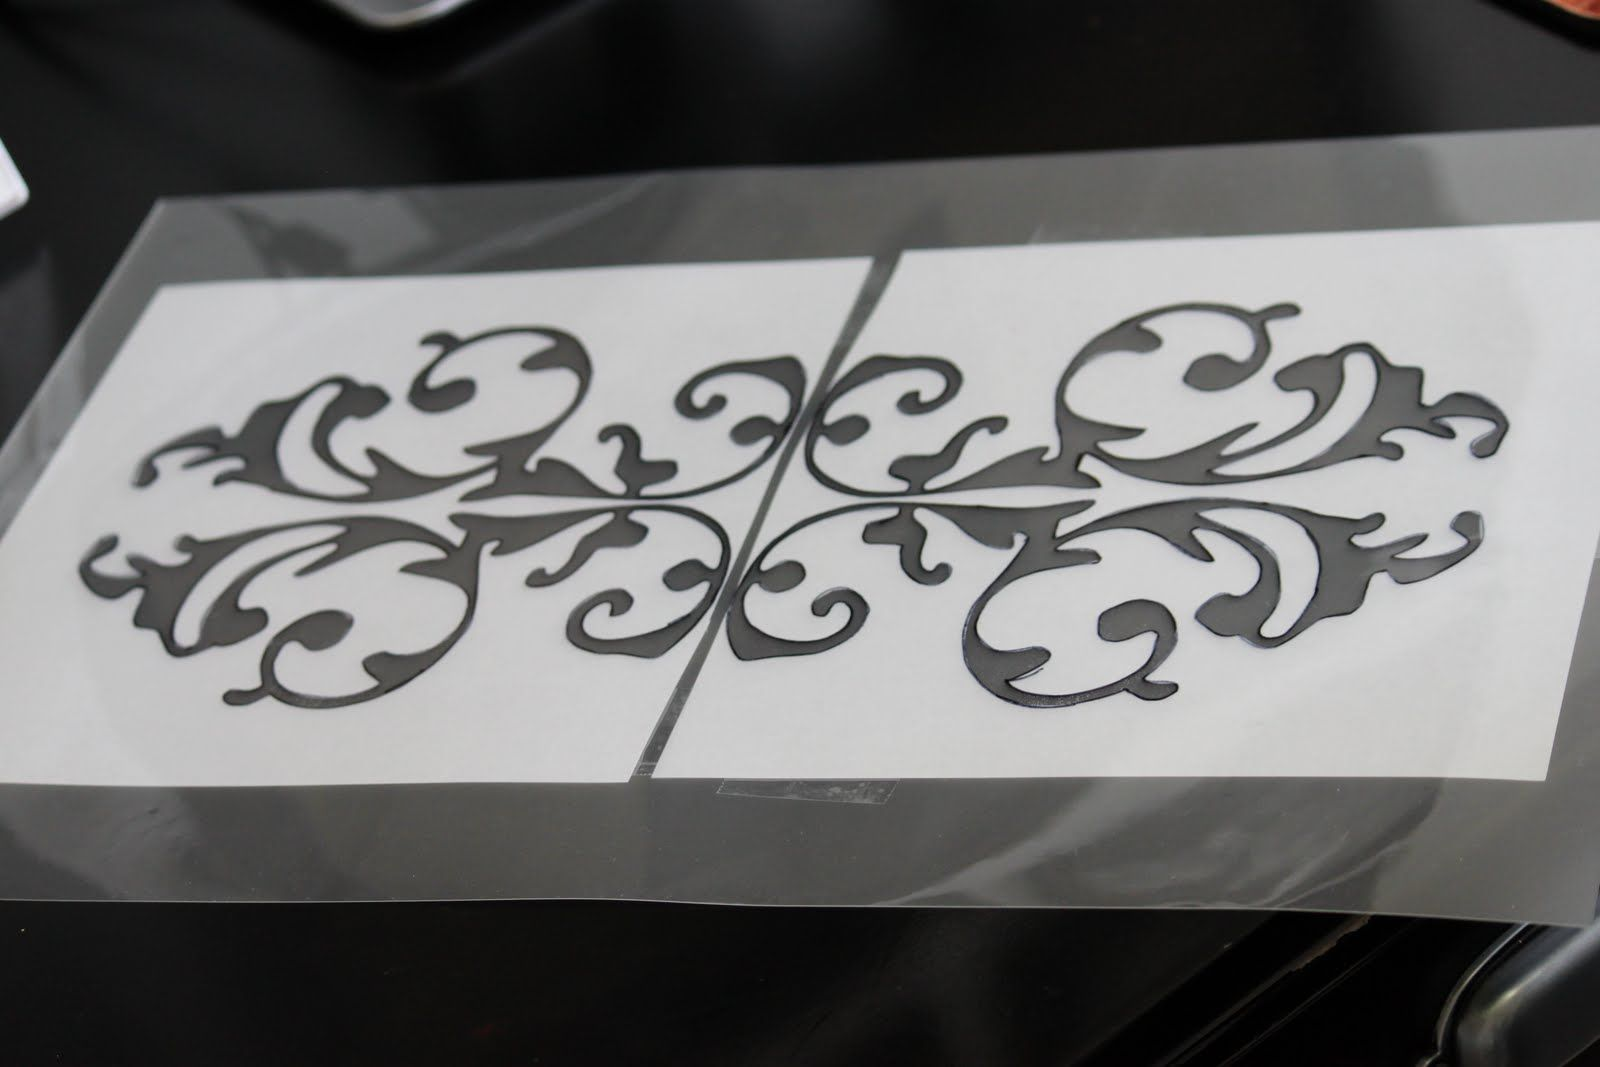 Make Your Own Stencils It S Easy As 1 2 3 1 Print From Pc Or Draw Your Stencil Pattern On